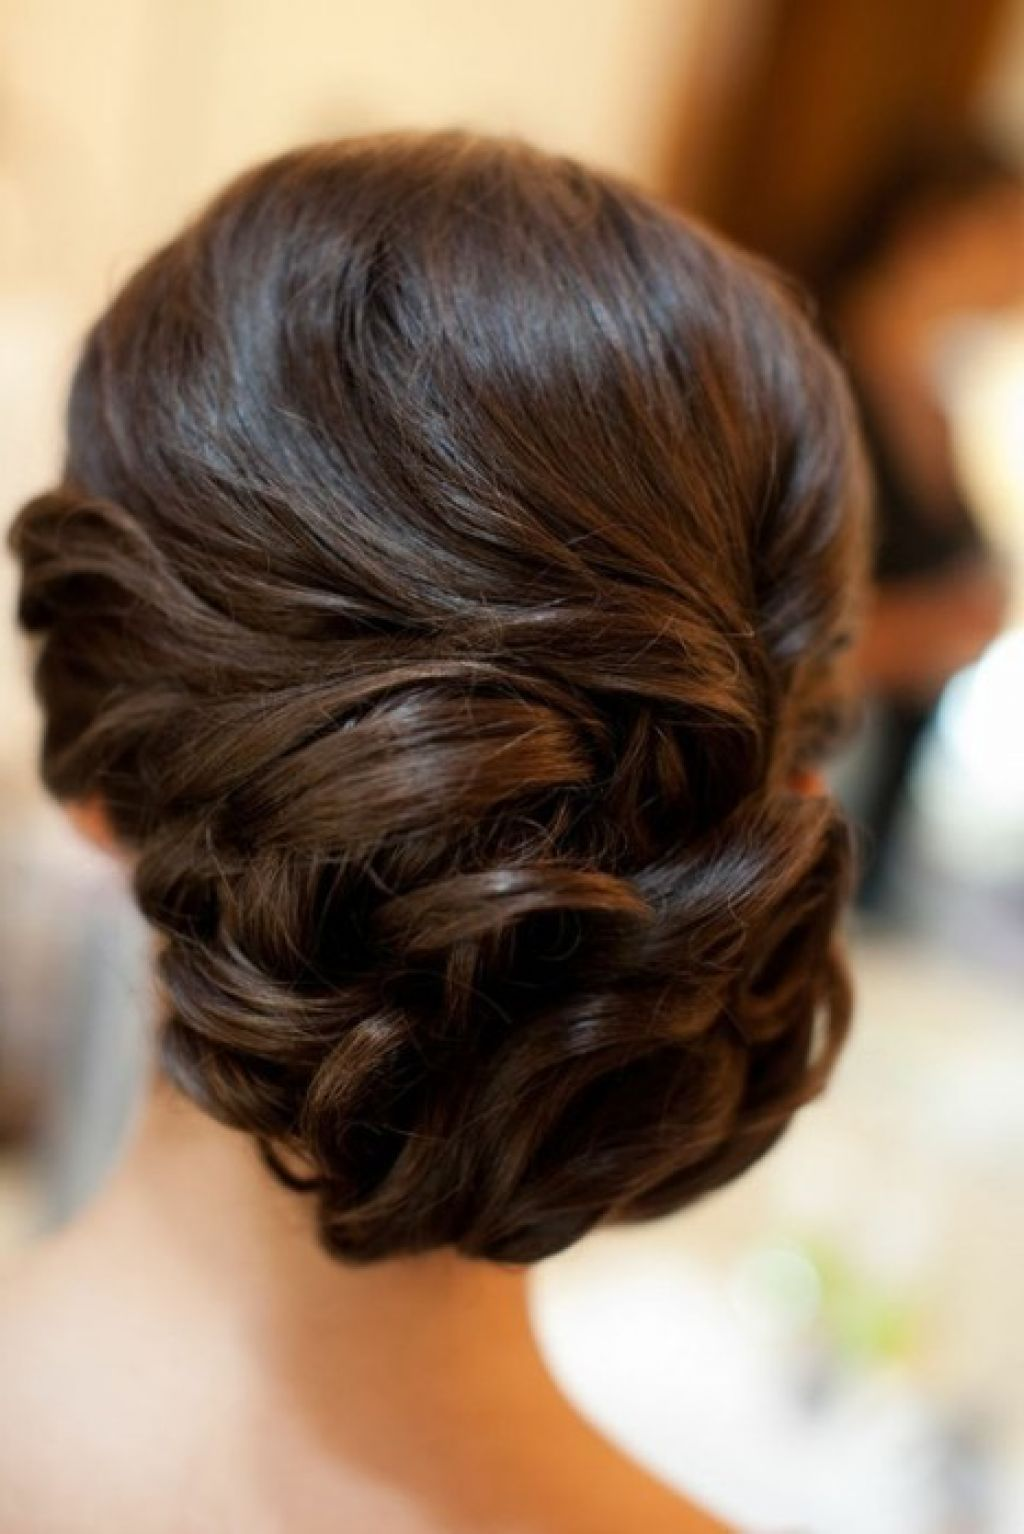 Awesome 1000 Images About Mob Hair On Pinterest Updo Jon Stewart And Short Hairstyles For Black Women Fulllsitofus